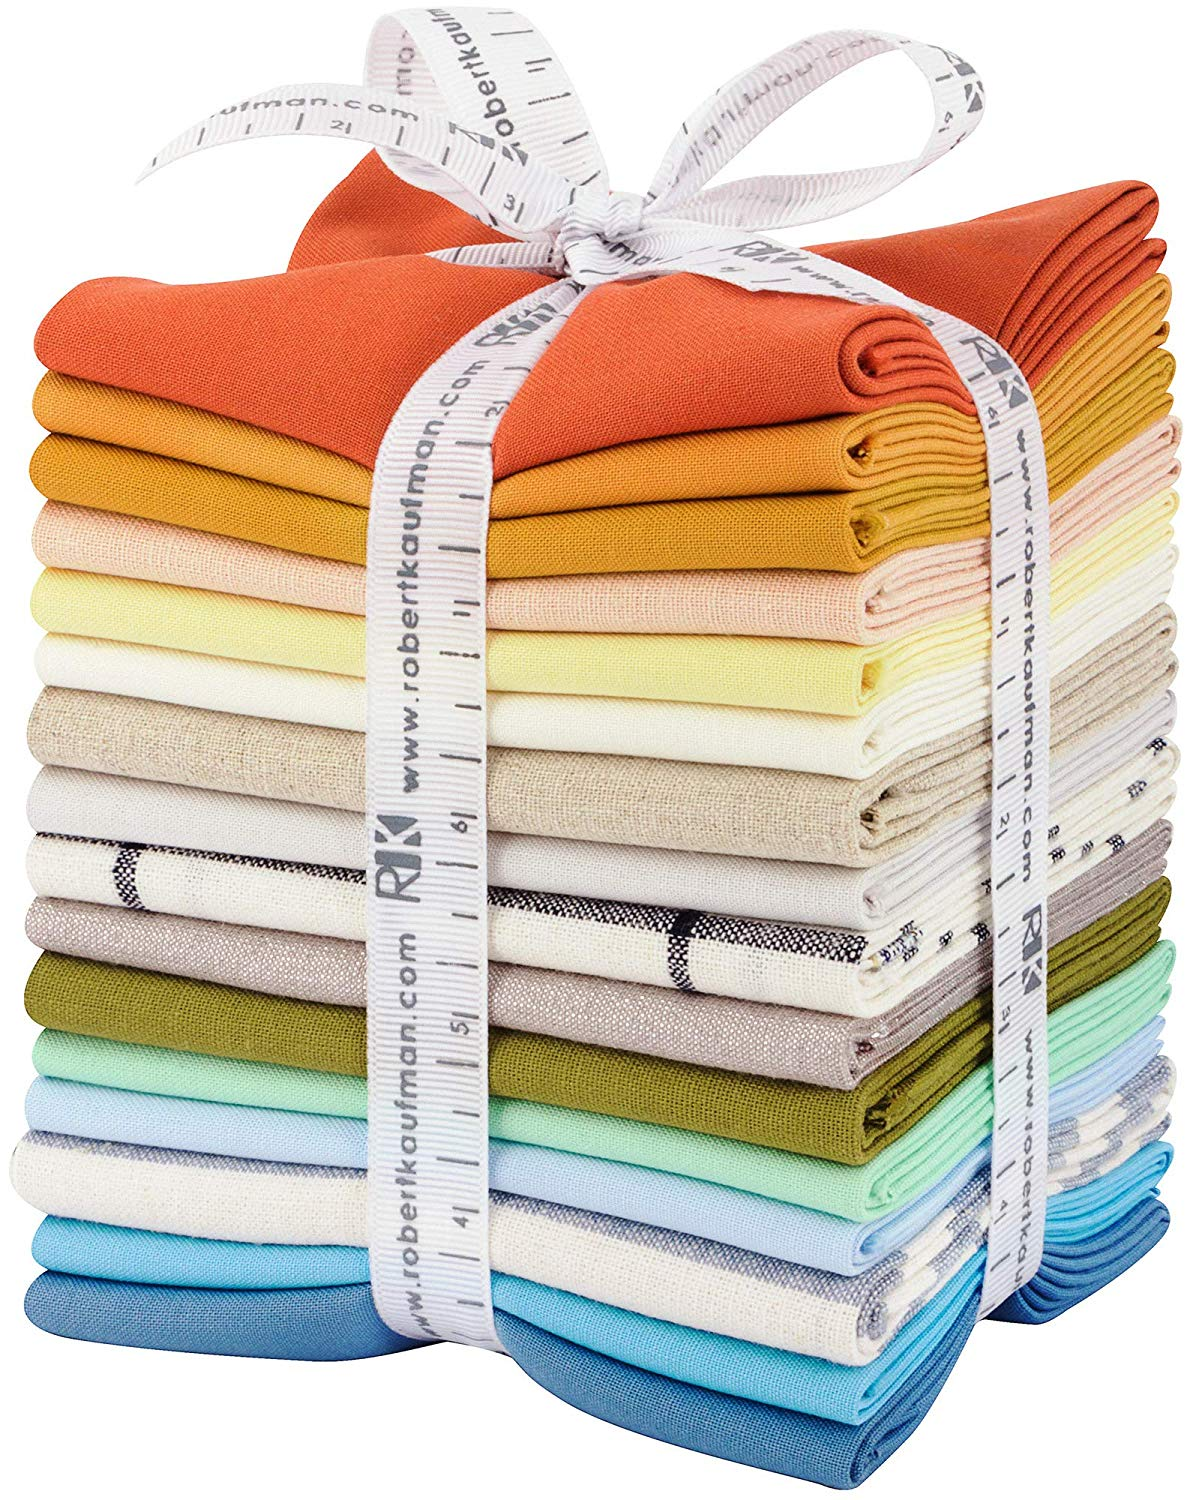 Harriot Coordinates by Carolyn Friedlander; 16 Fat Quarters - Robert Kaufman